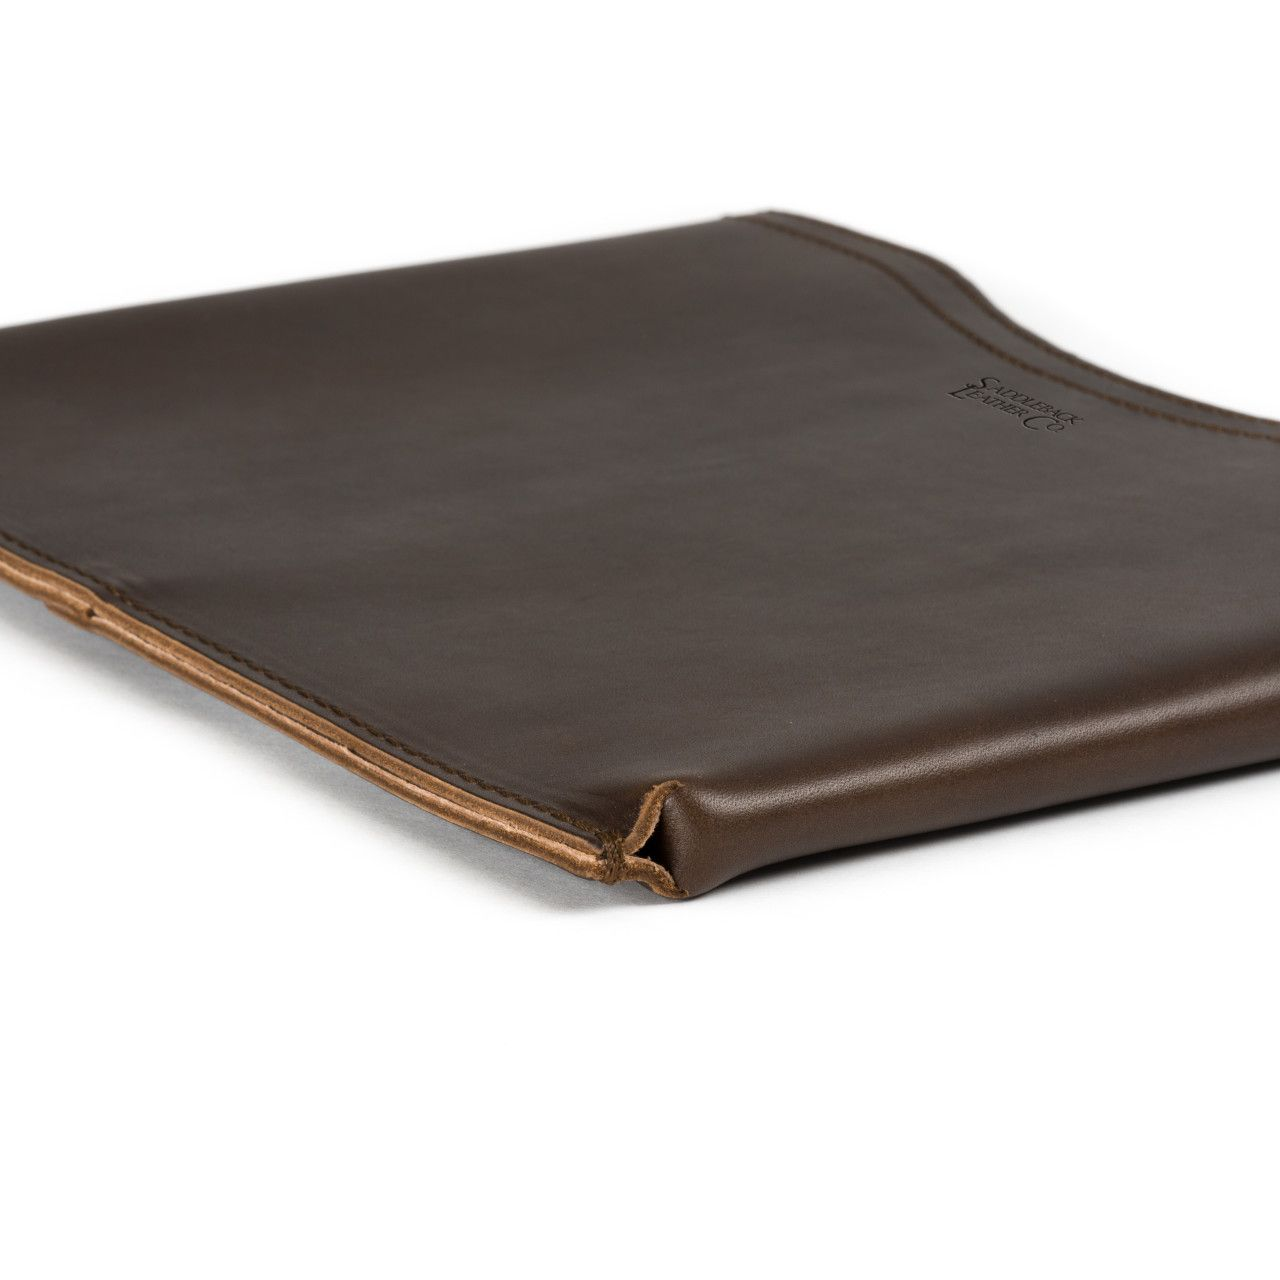 macbook pro leather sleeve small in dark coffee brown leather